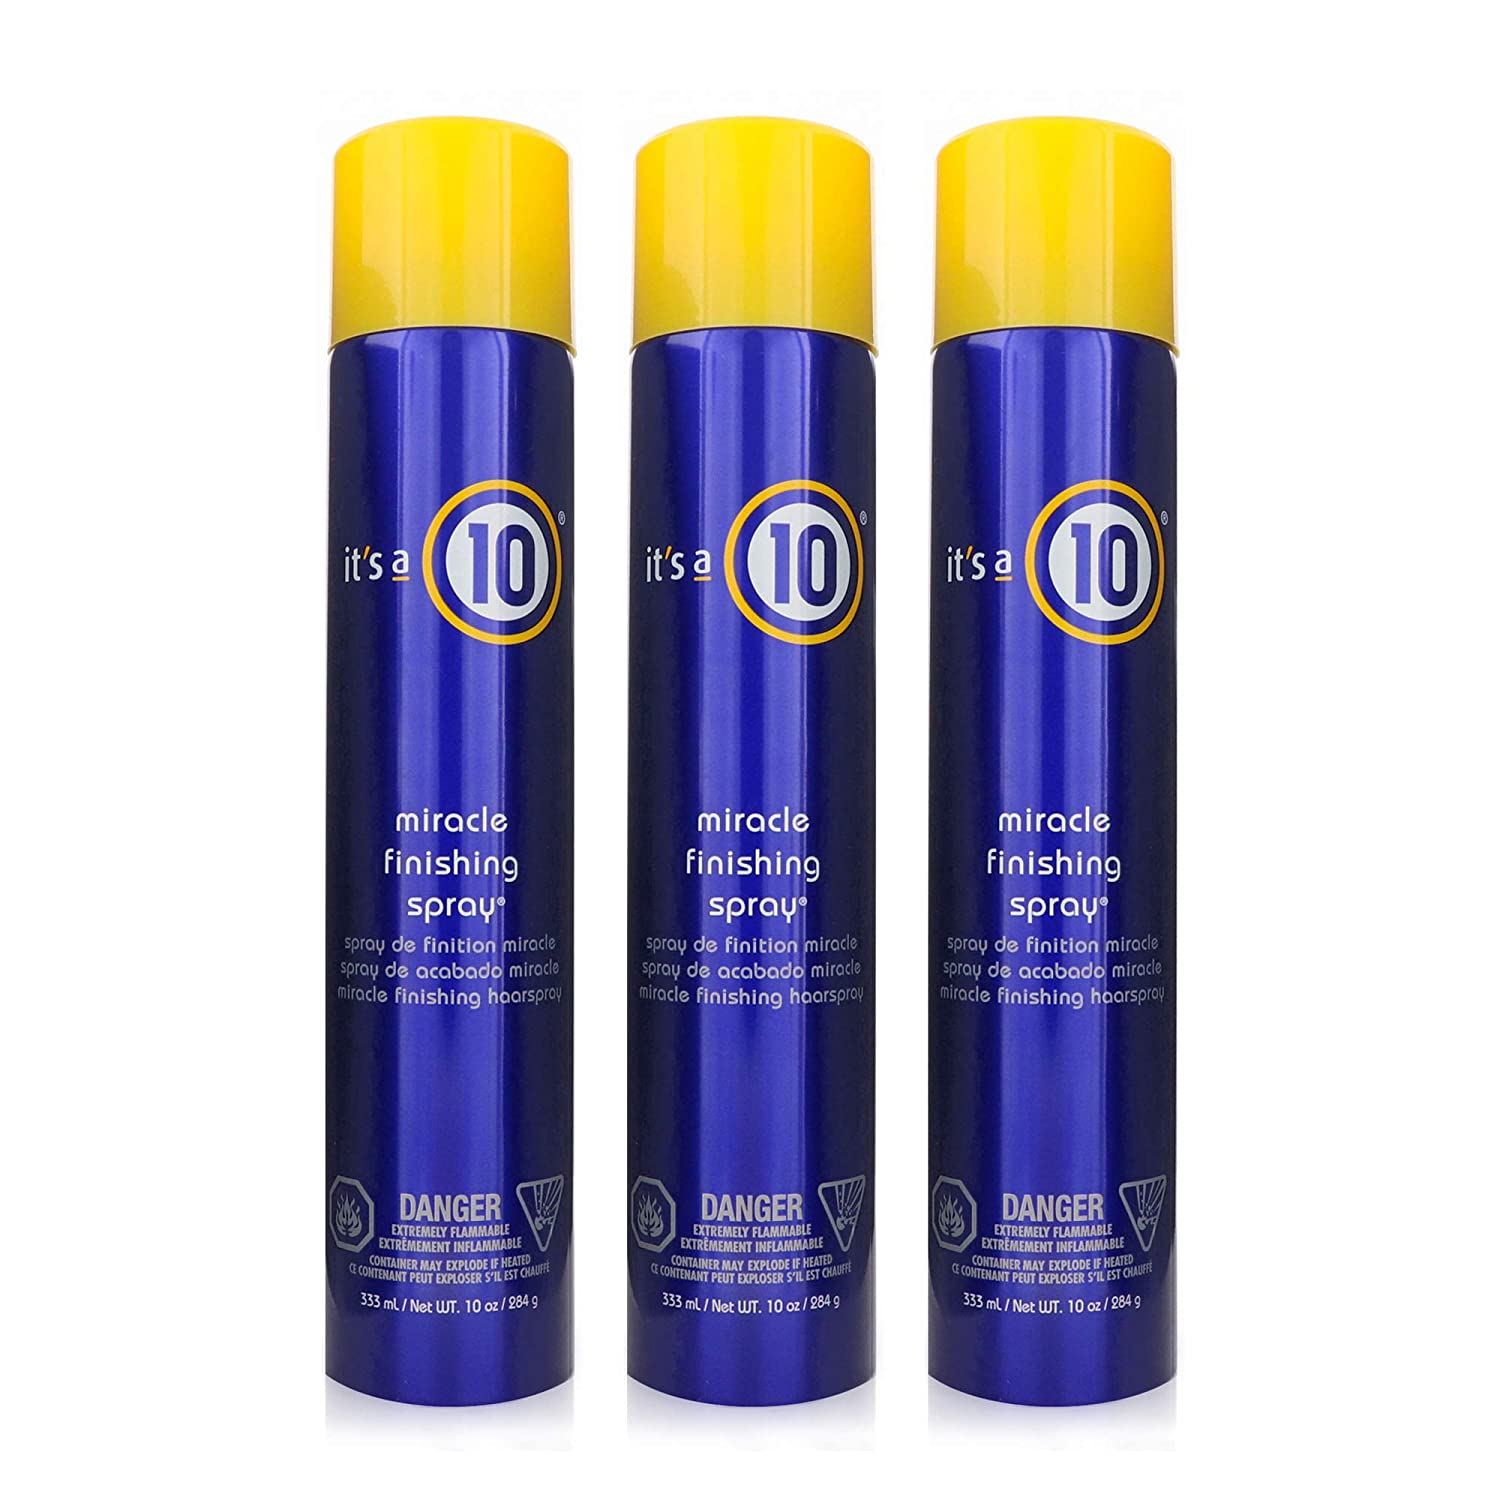 It's a 10 Haircare Miracle Finishing Spray, 10 fl. oz. (Pack of 3)